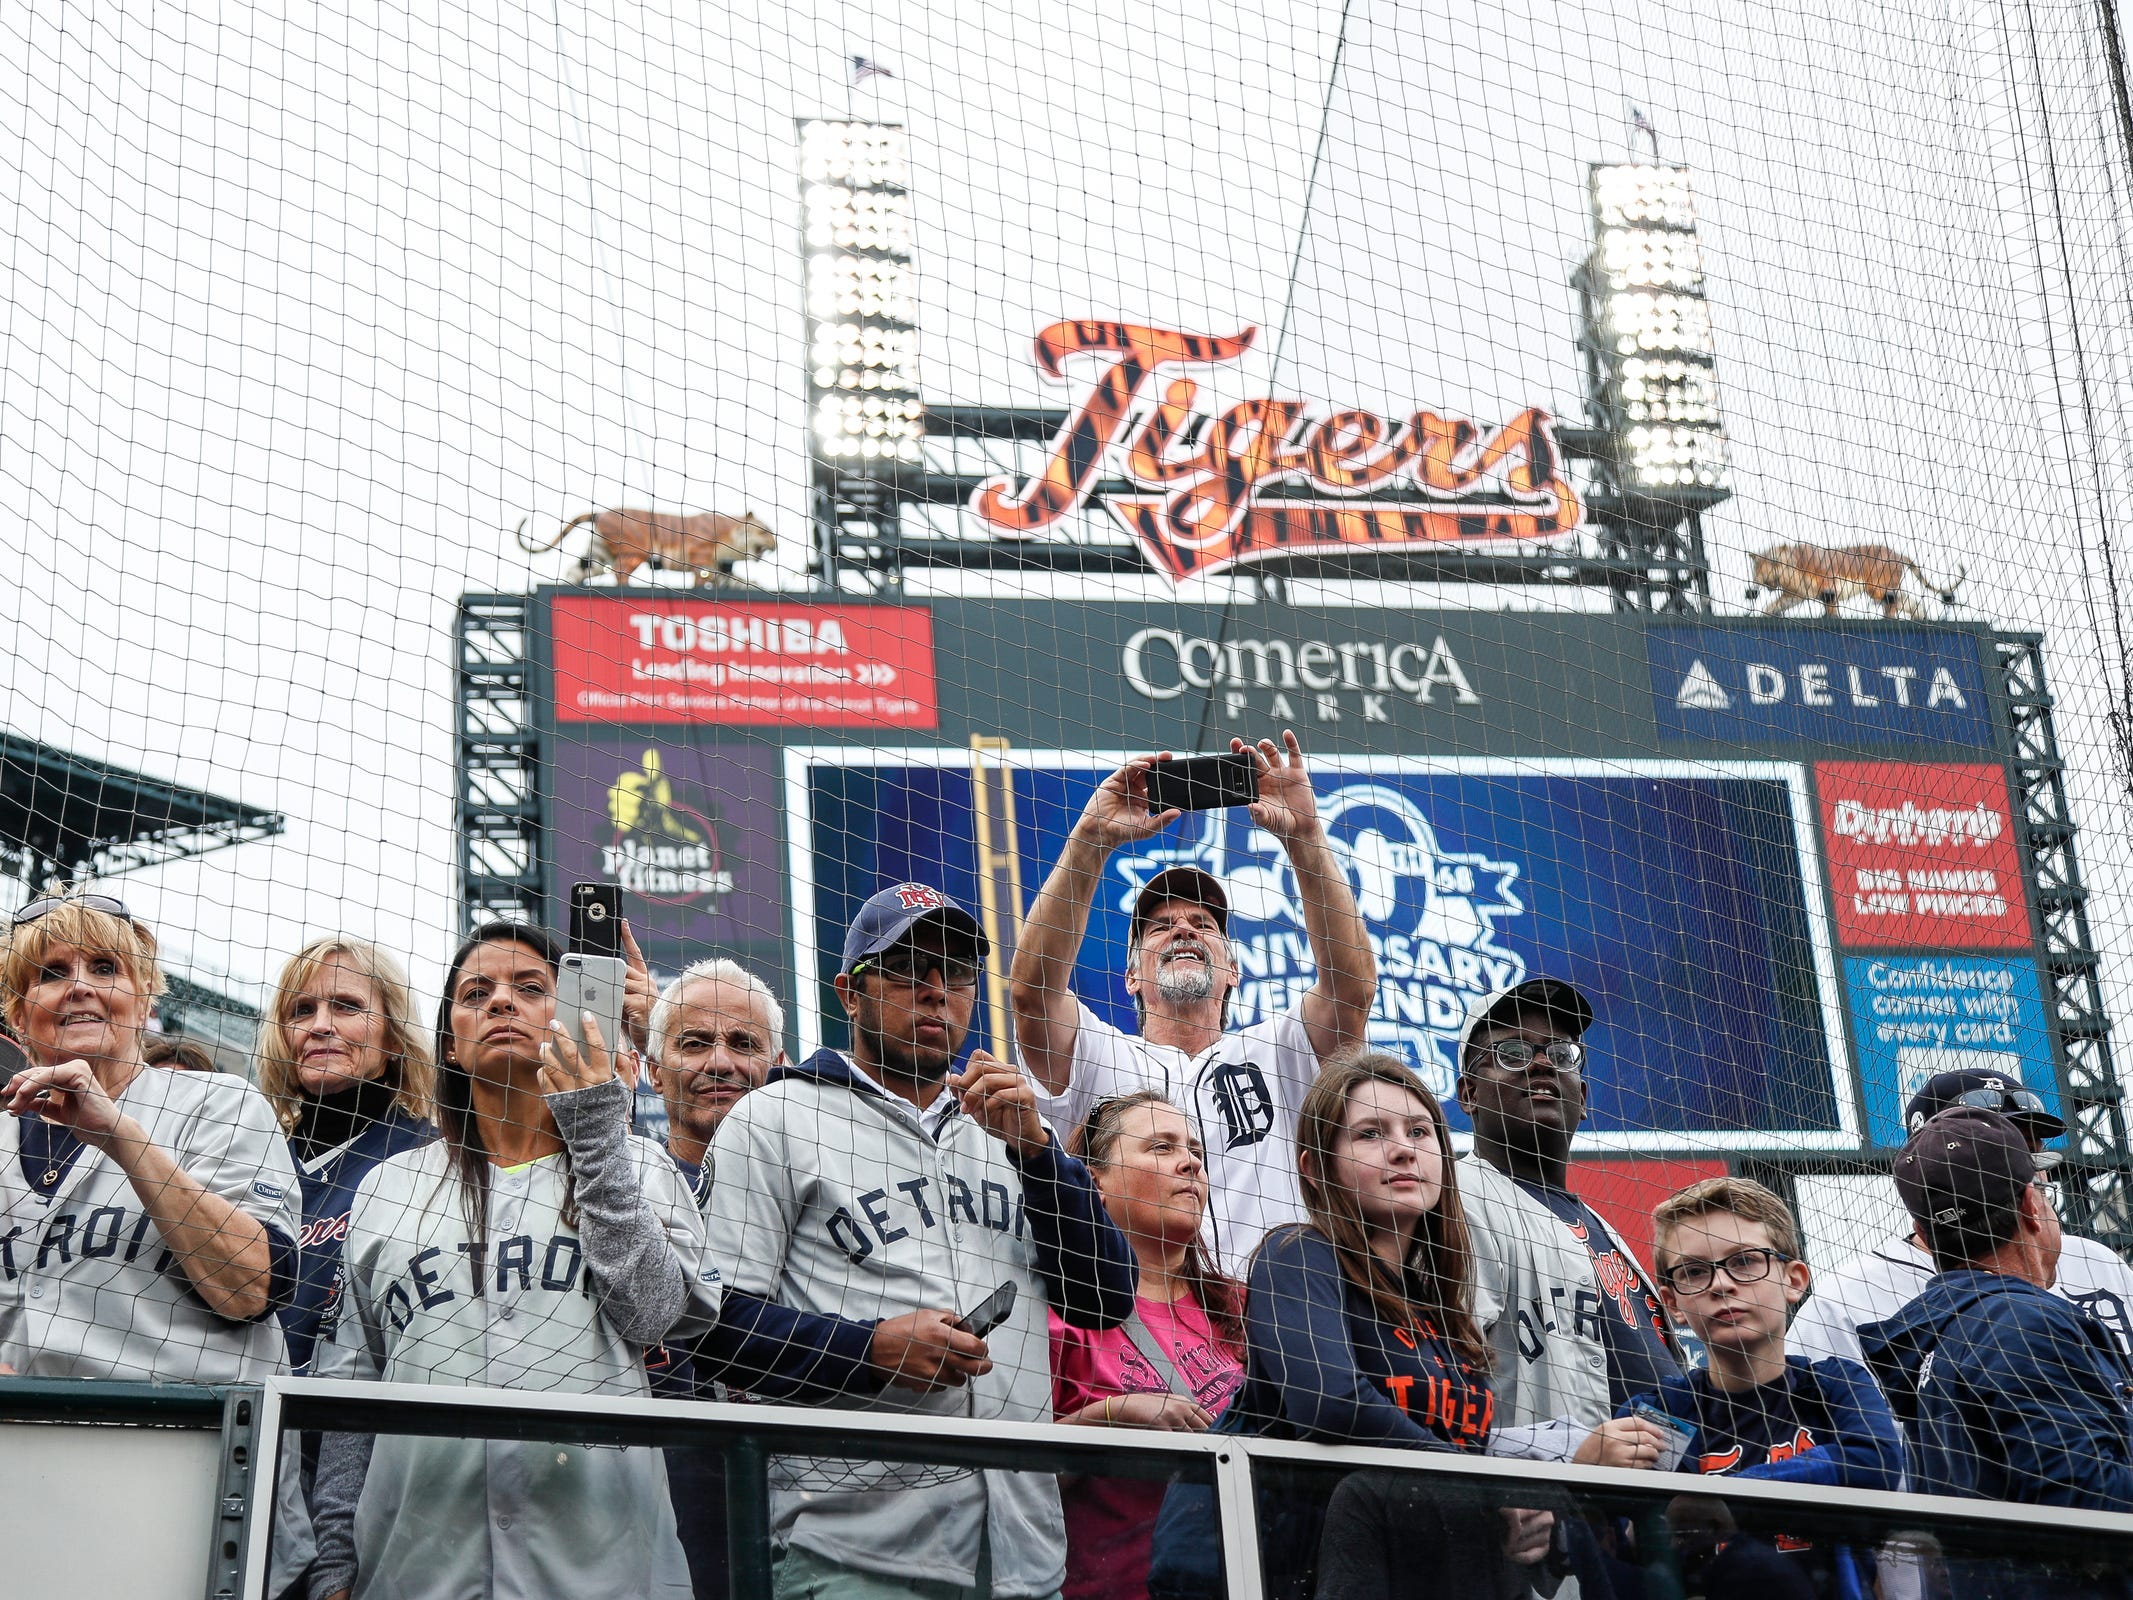 Fans cheer as the 1968 Detroit Tigers players are introduced during the celebration of the 50th anniversary of the 1968 World Series championship at Comerica Park in Detroit, Saturday, Sept. 8, 2018.